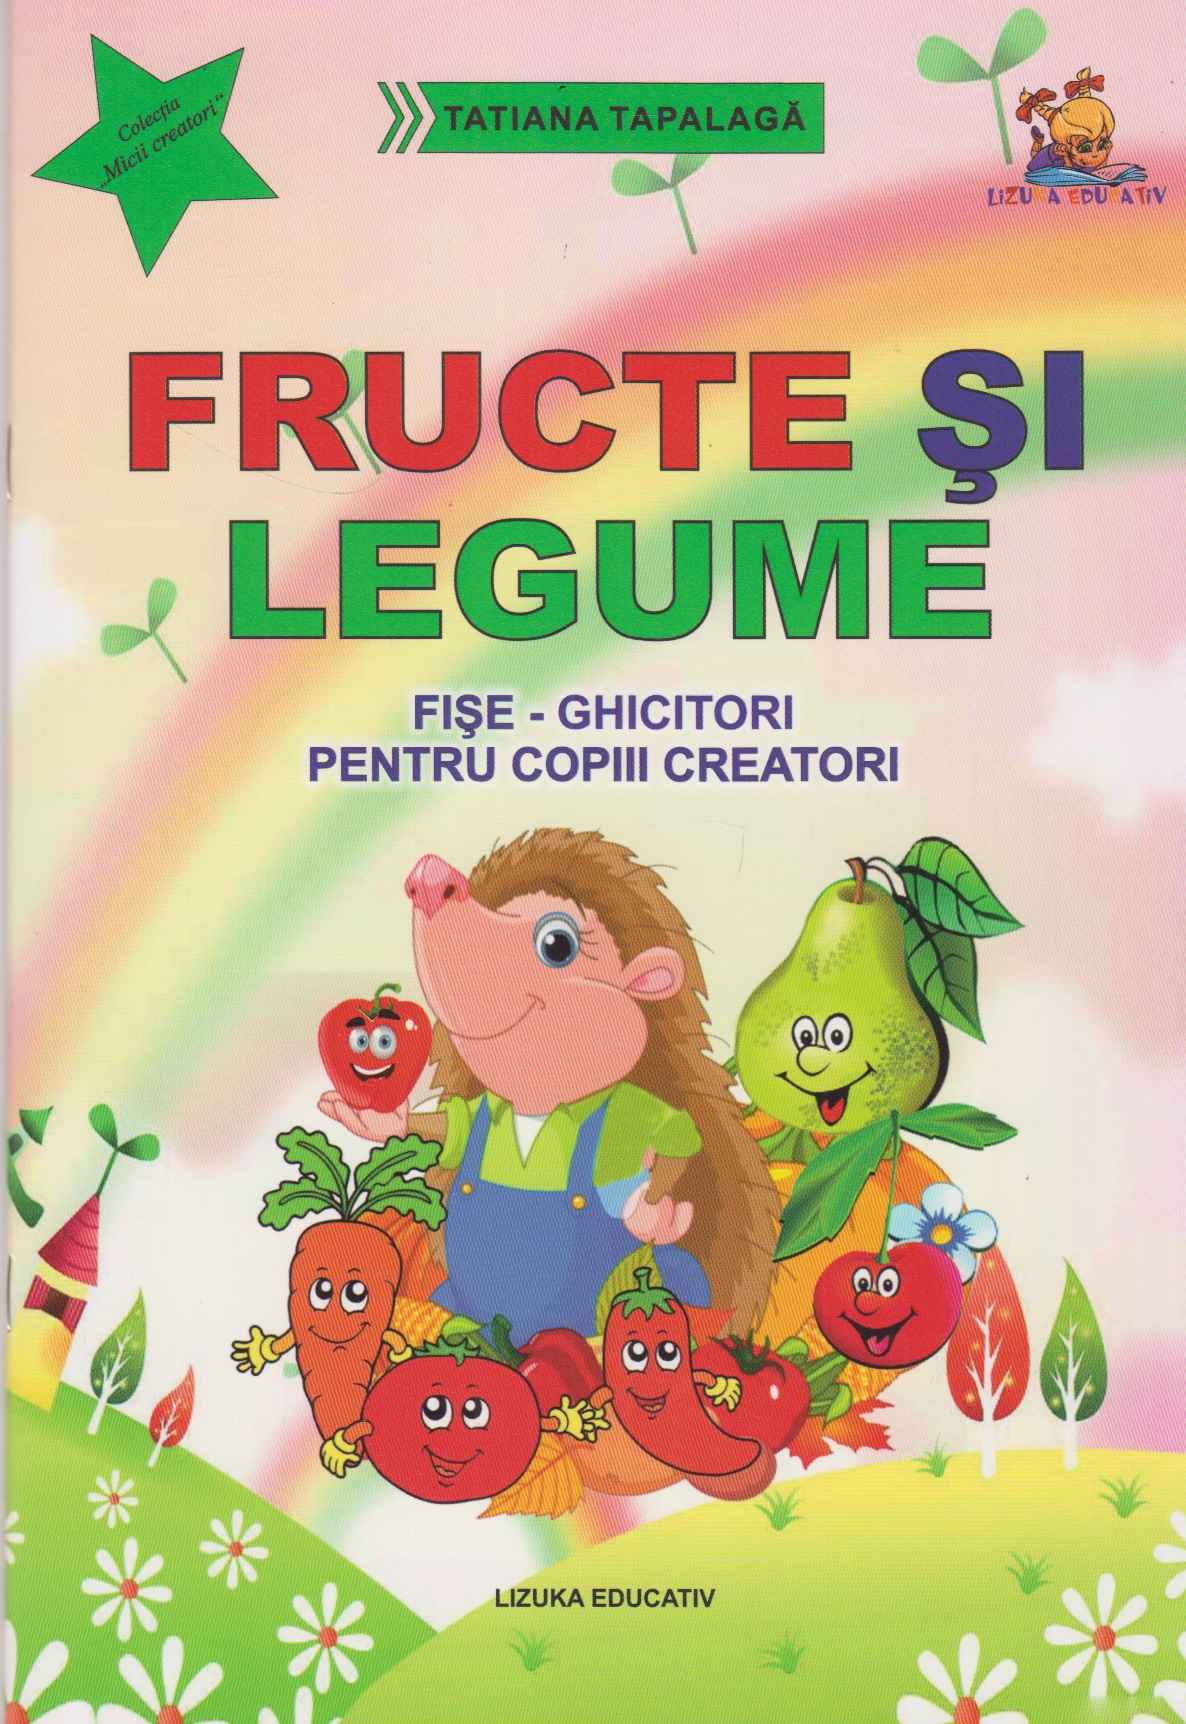 Fructe legume Fise ghicitori pentru